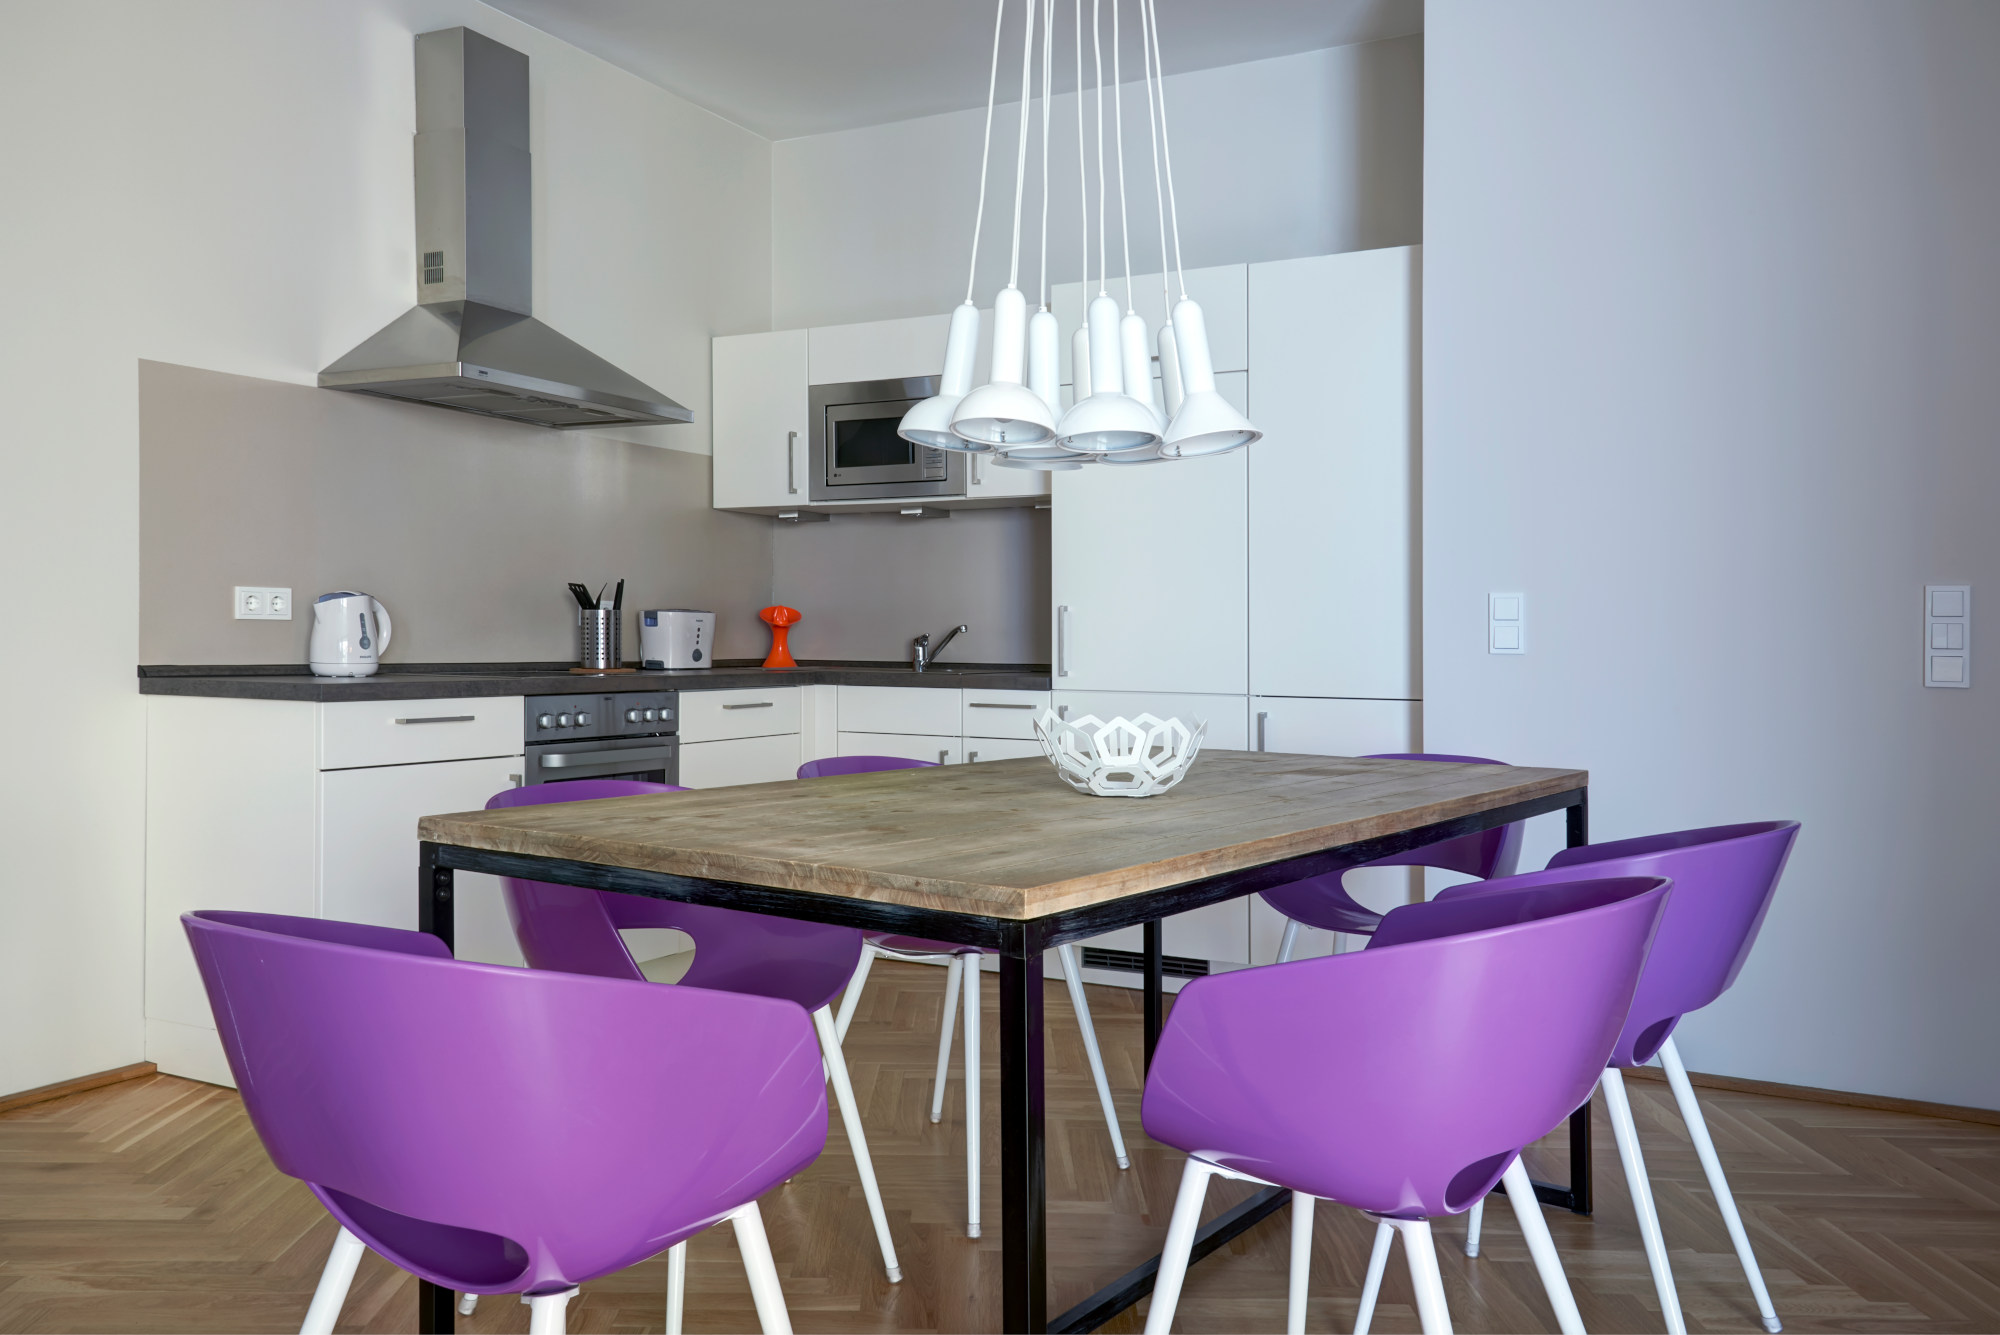 Three bedroom apartment Berlin - dining table - kitchen